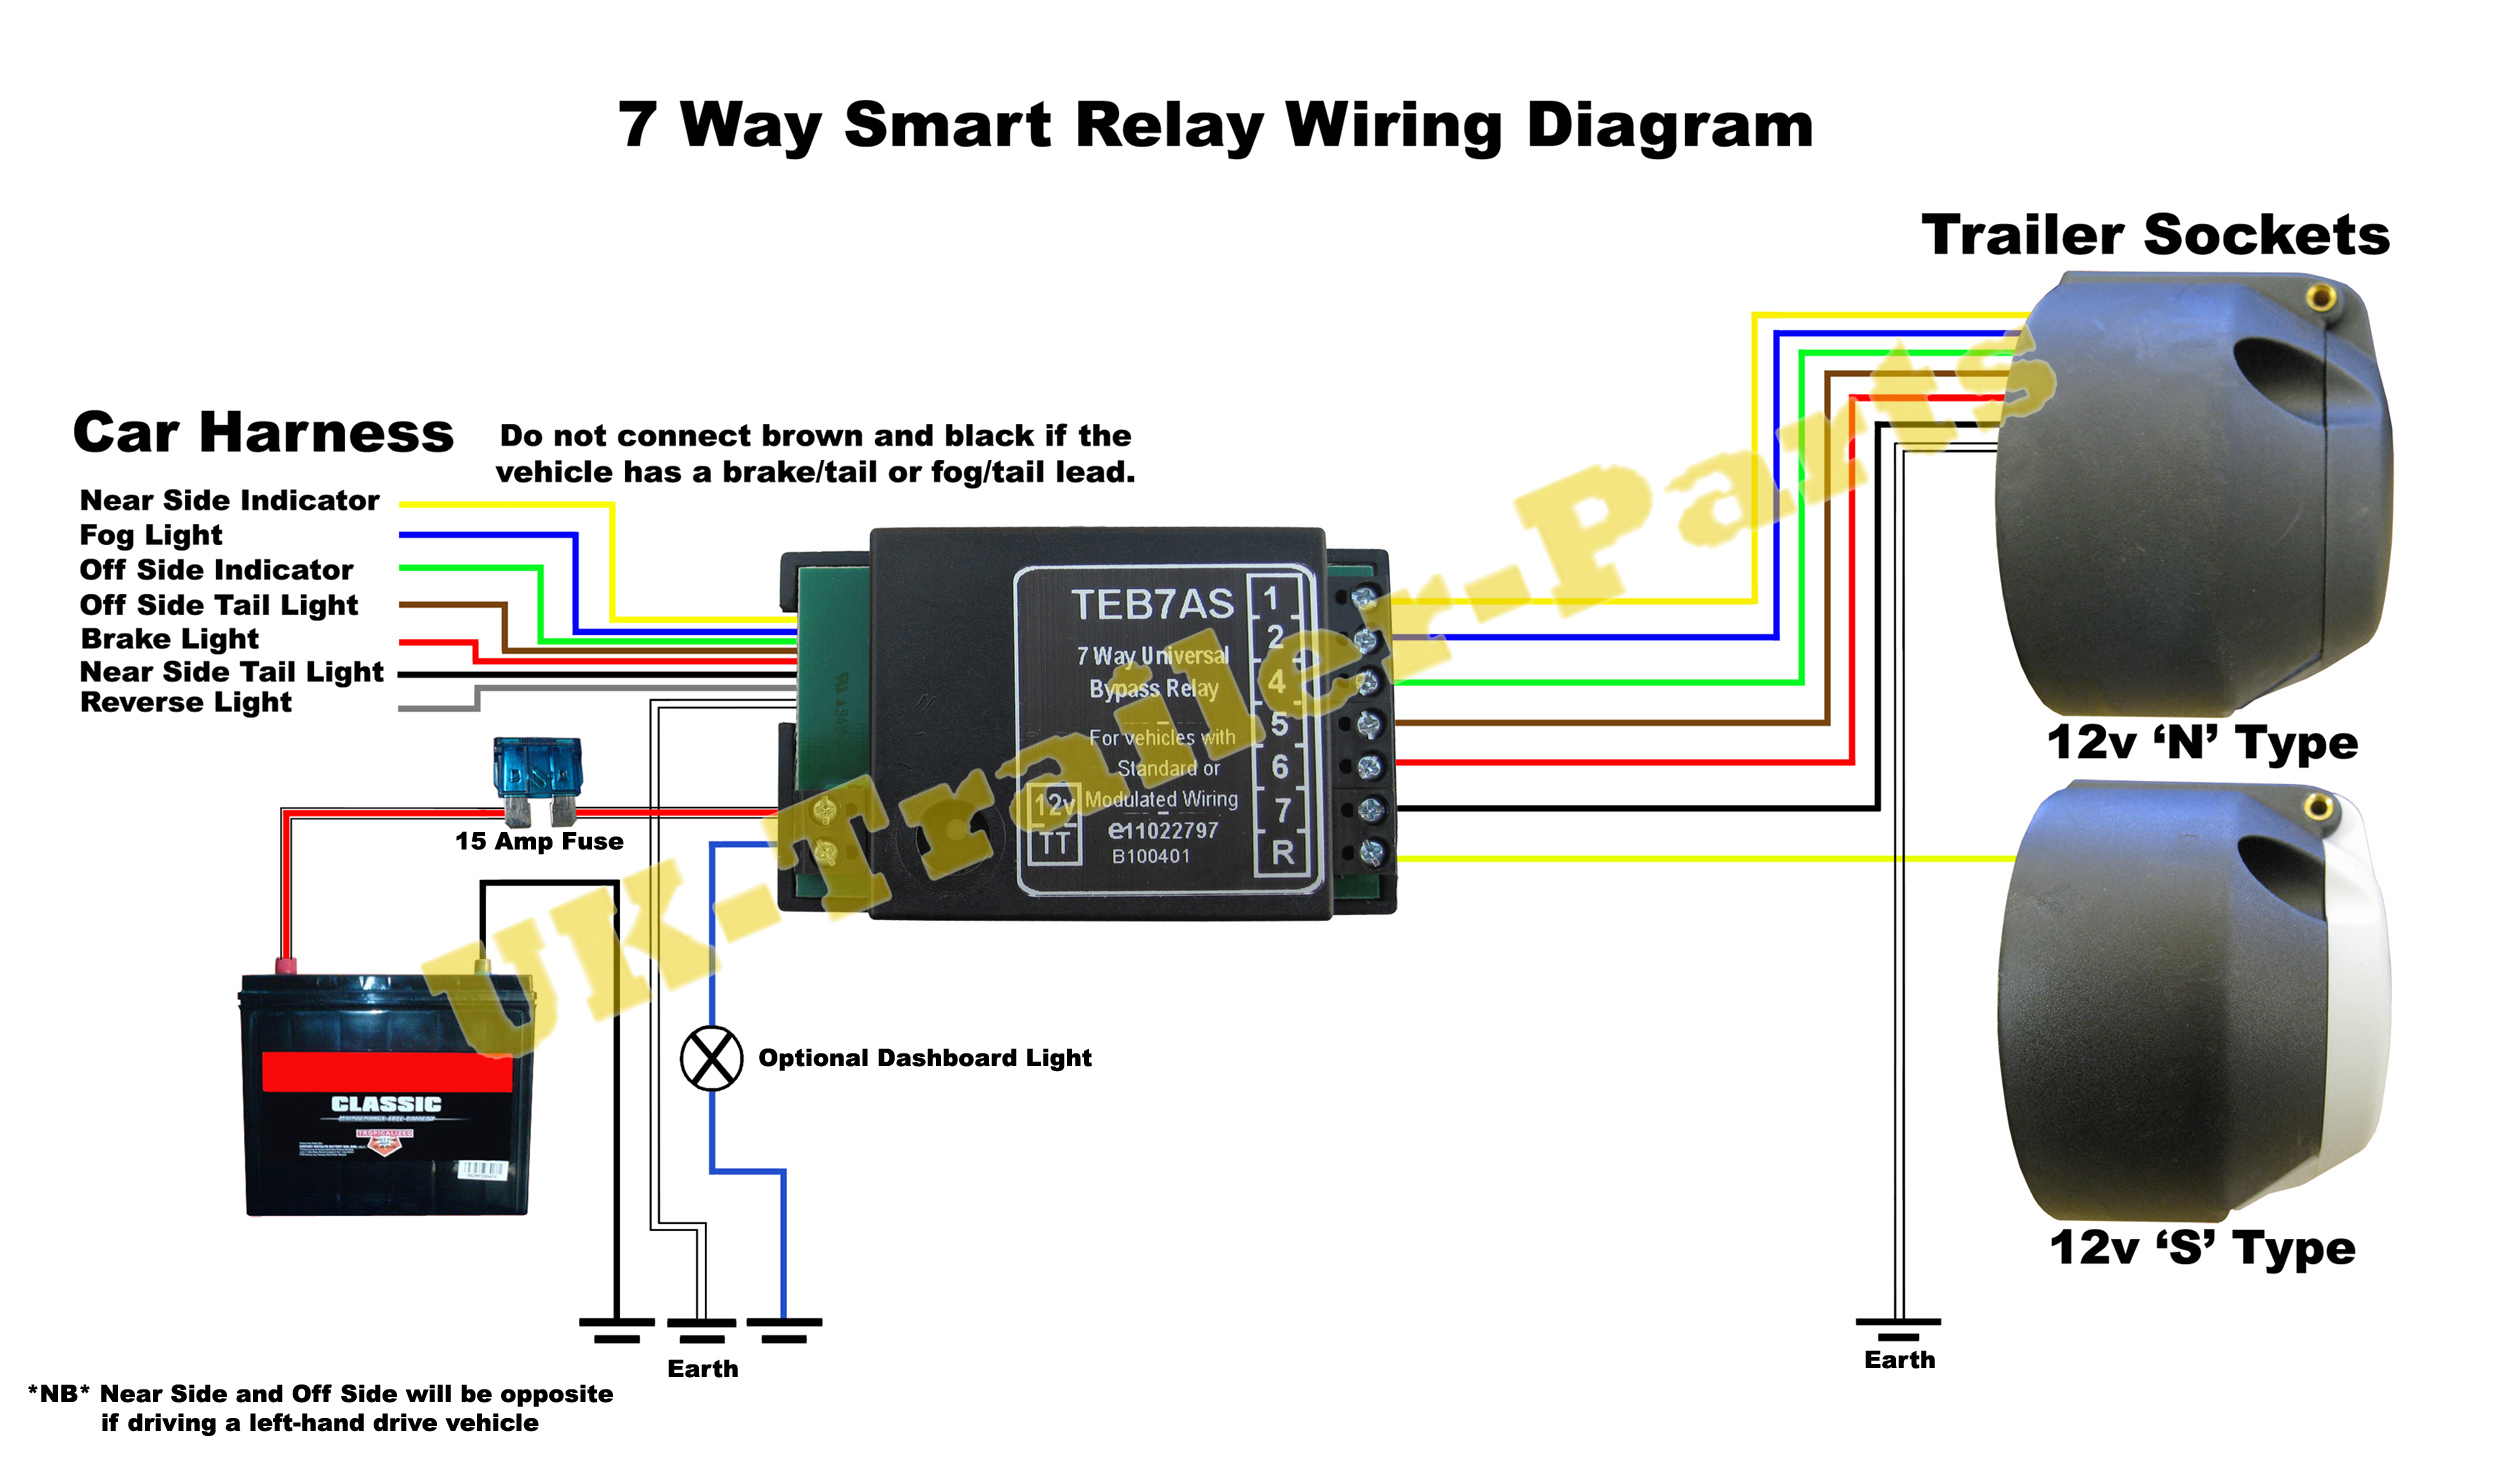 smart relay wiring diagram2 7 way universal bypass relay wiring diagram uk trailer parts 13 pin trailer socket wiring diagram uk at soozxer.org